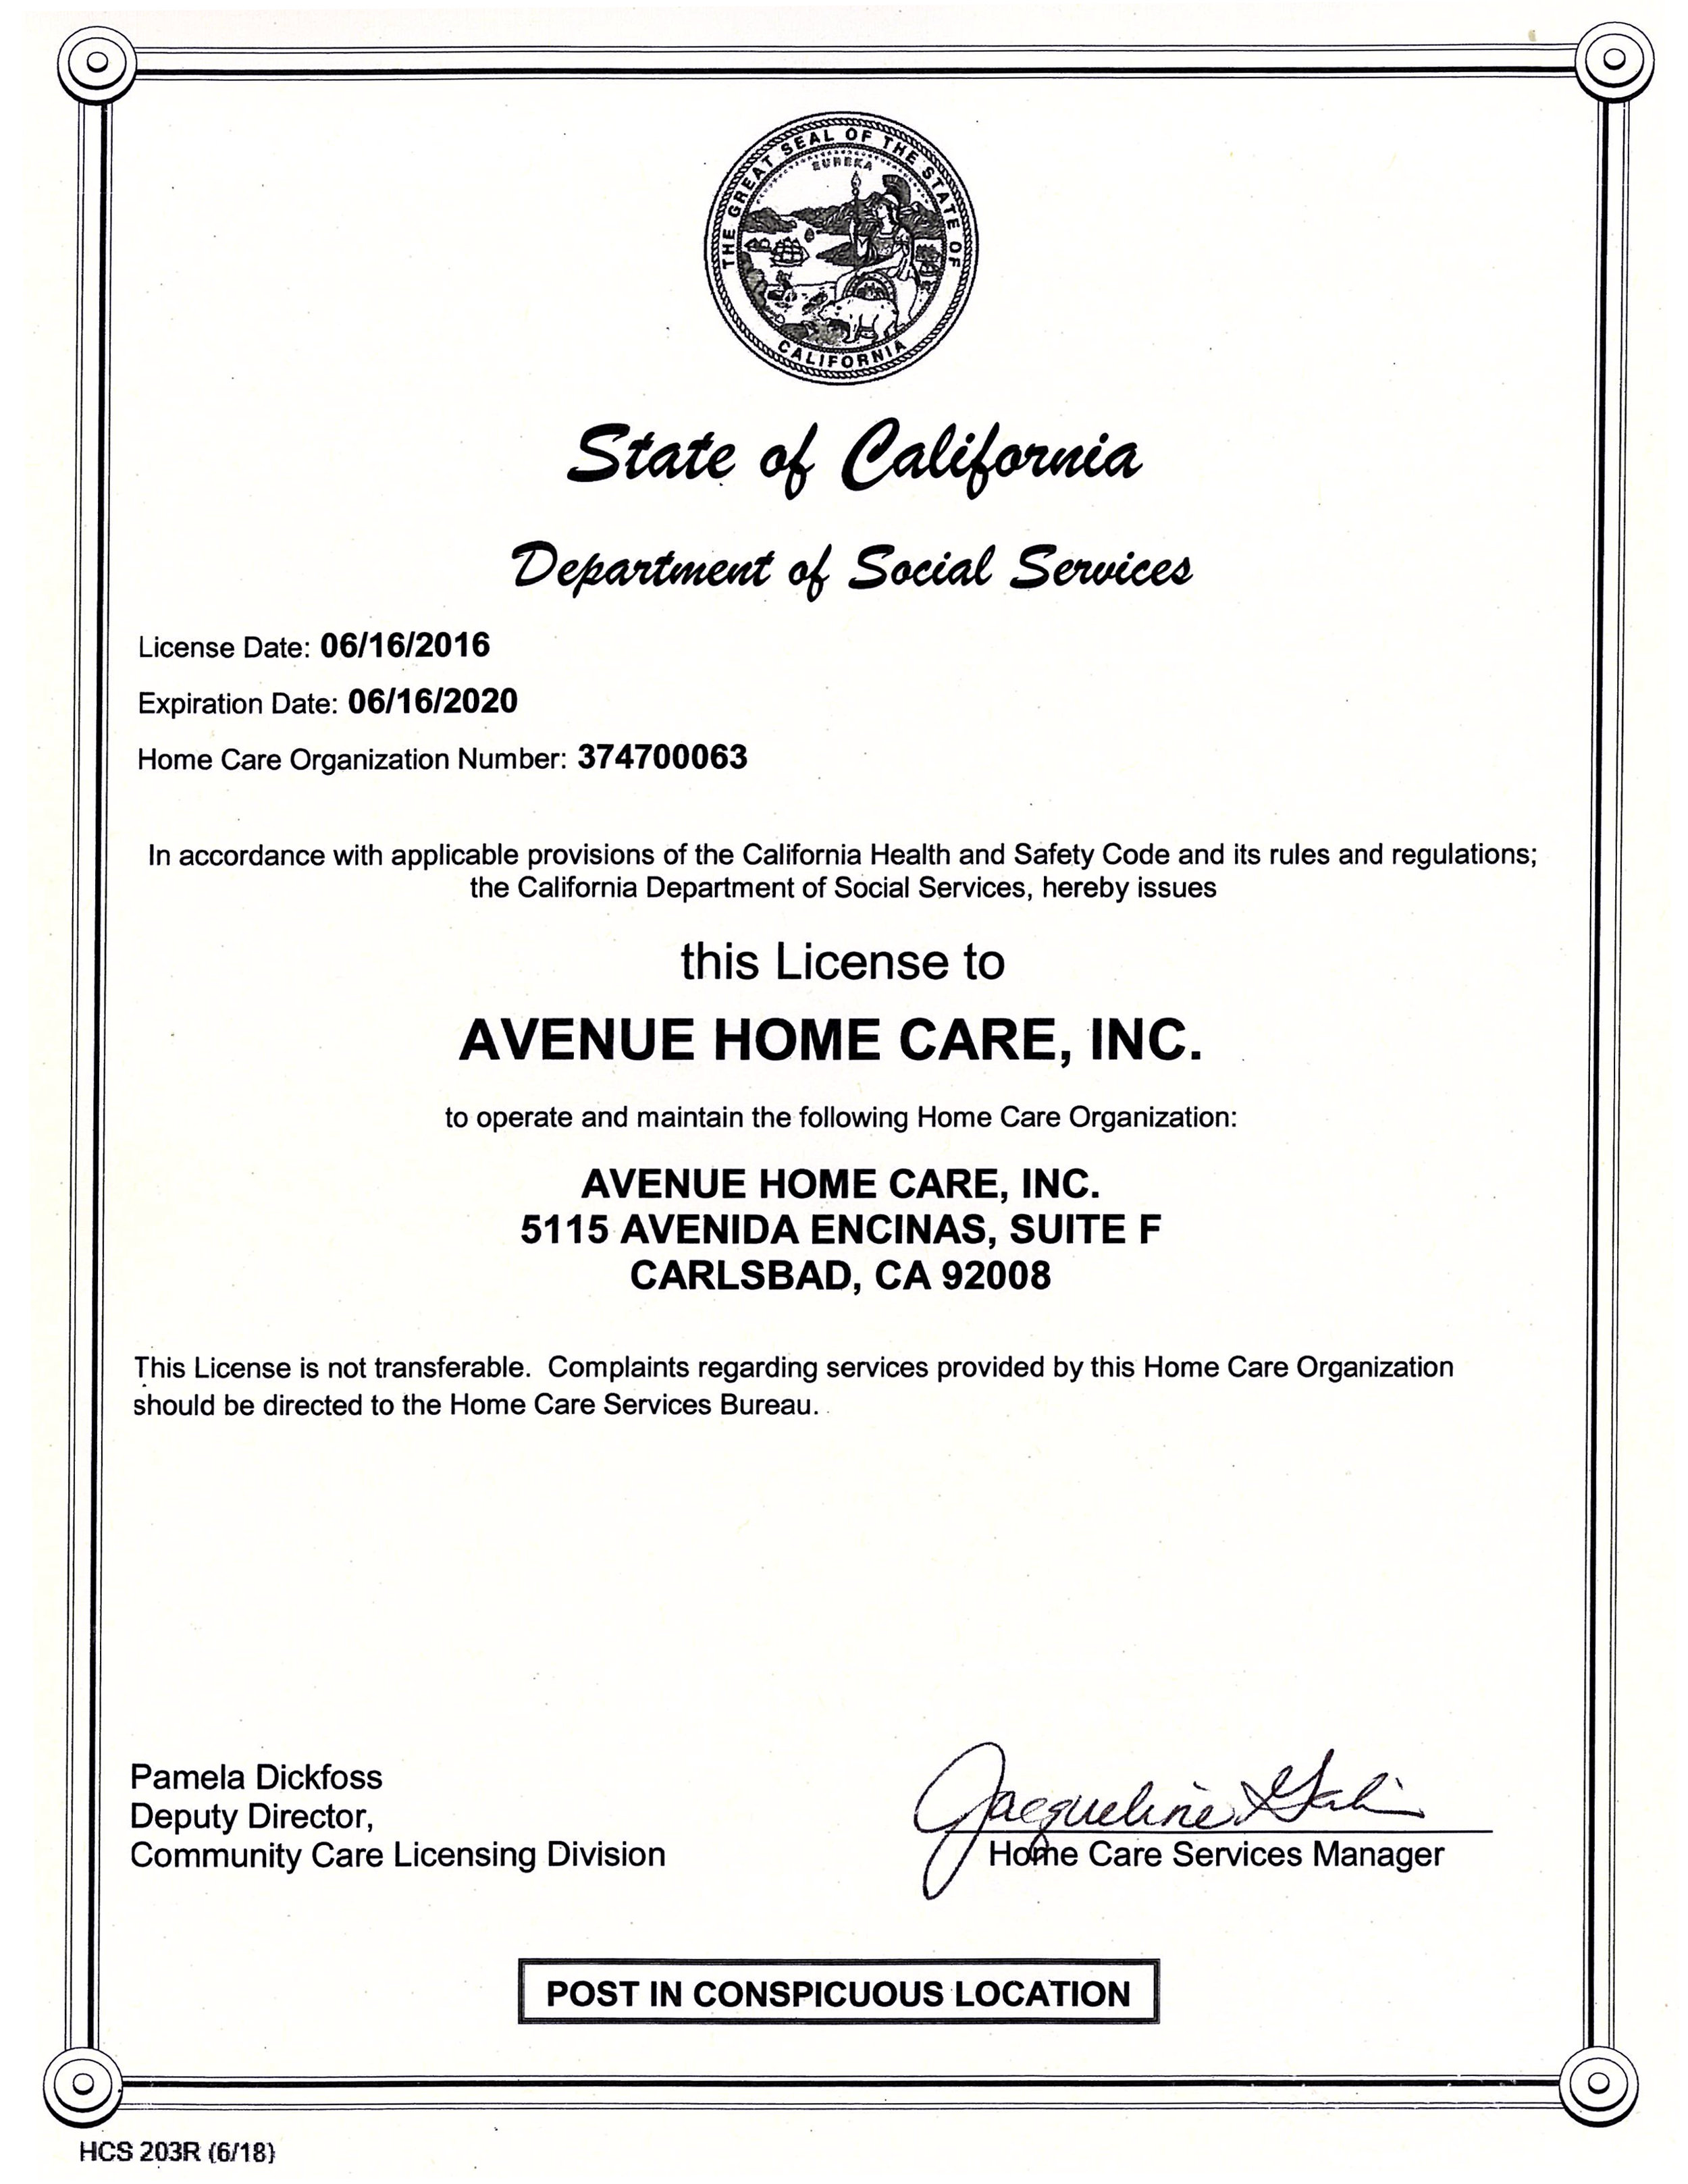 Avenue Home Care State of CA License